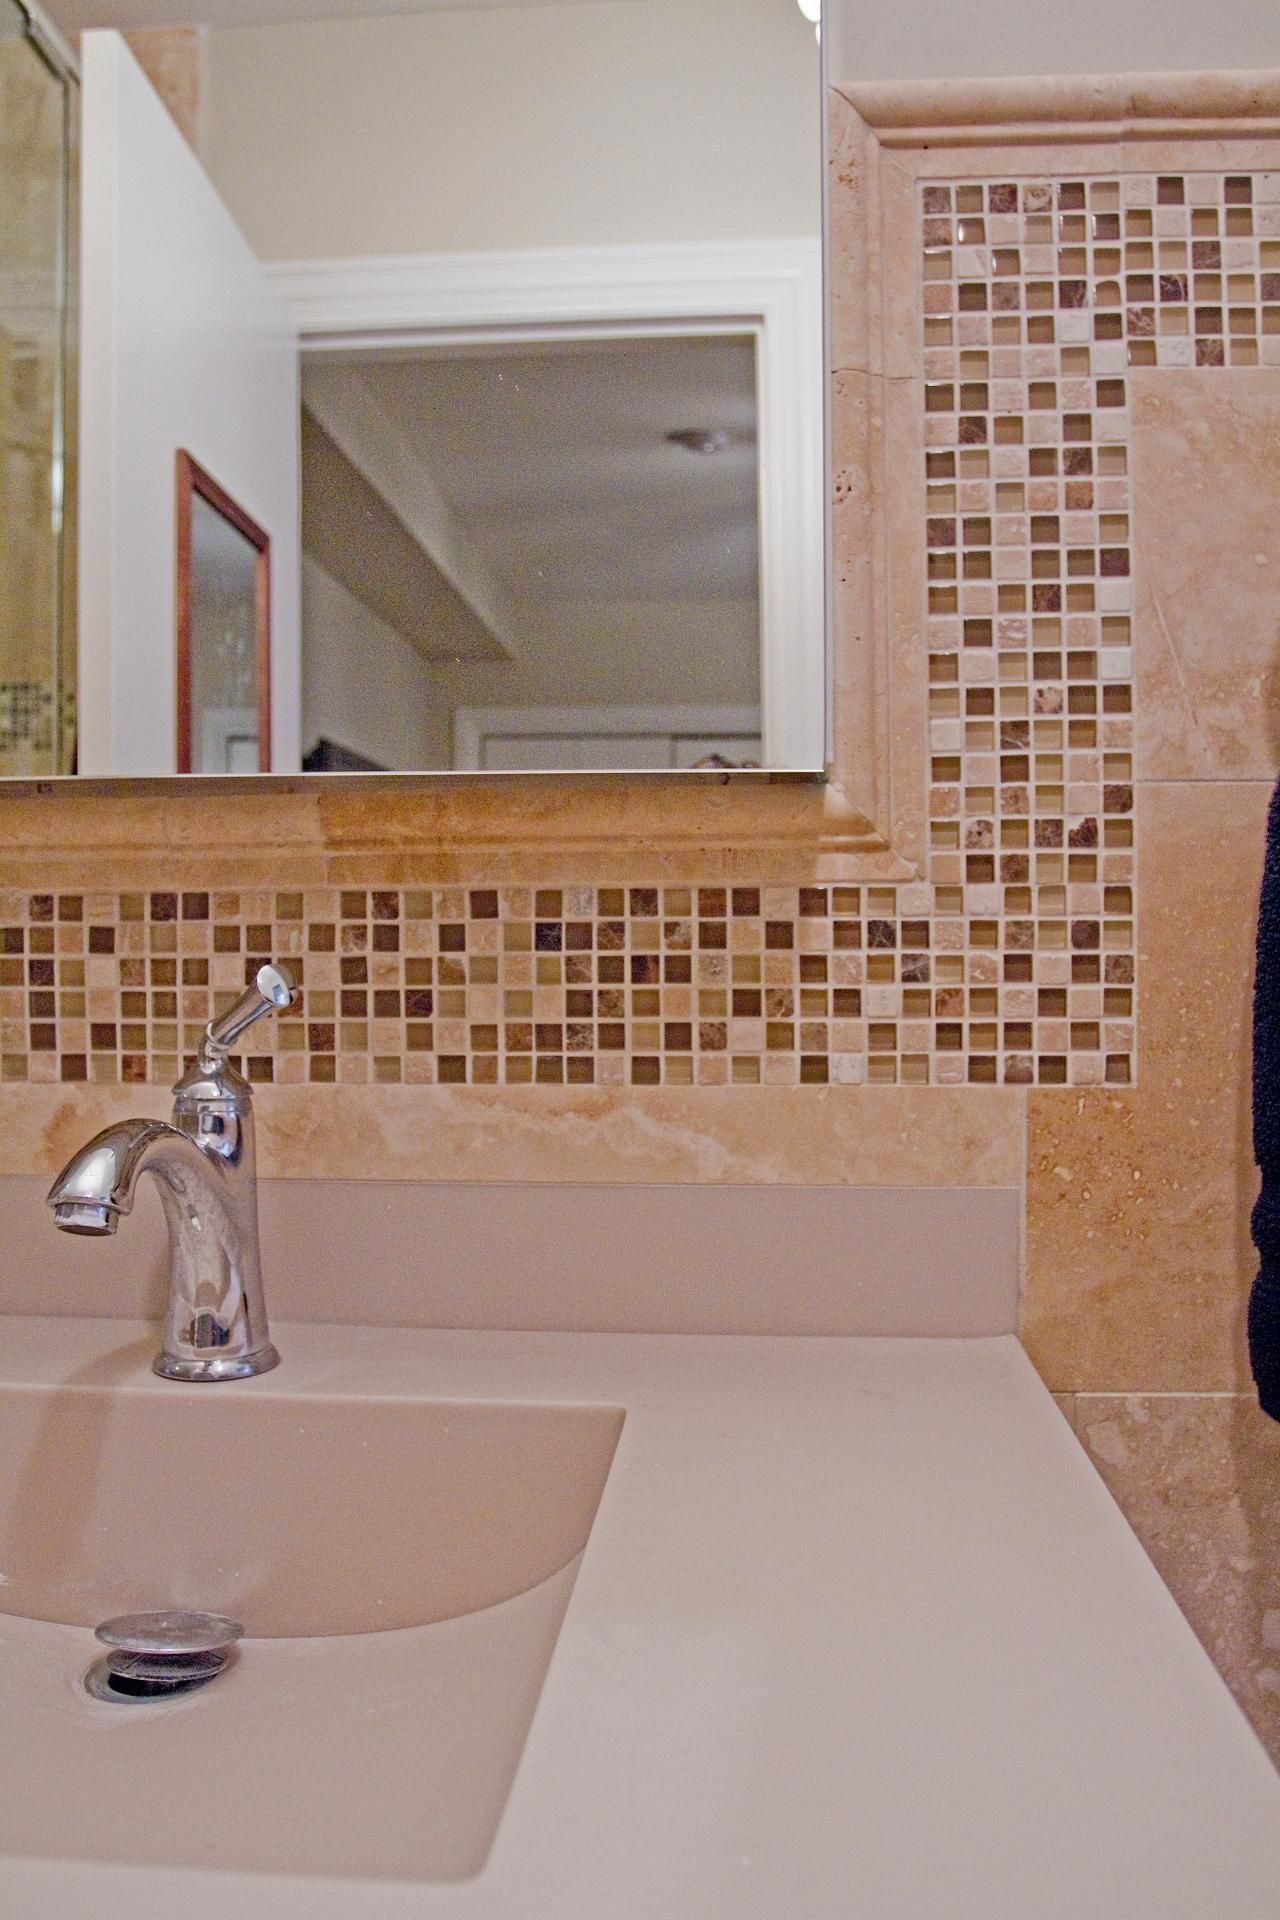 Mosaic border tiles bathrooms - Mosaic Tiles Flow Throughout The Bathroom Creating A Border Around The Milky Travertine Backsplash